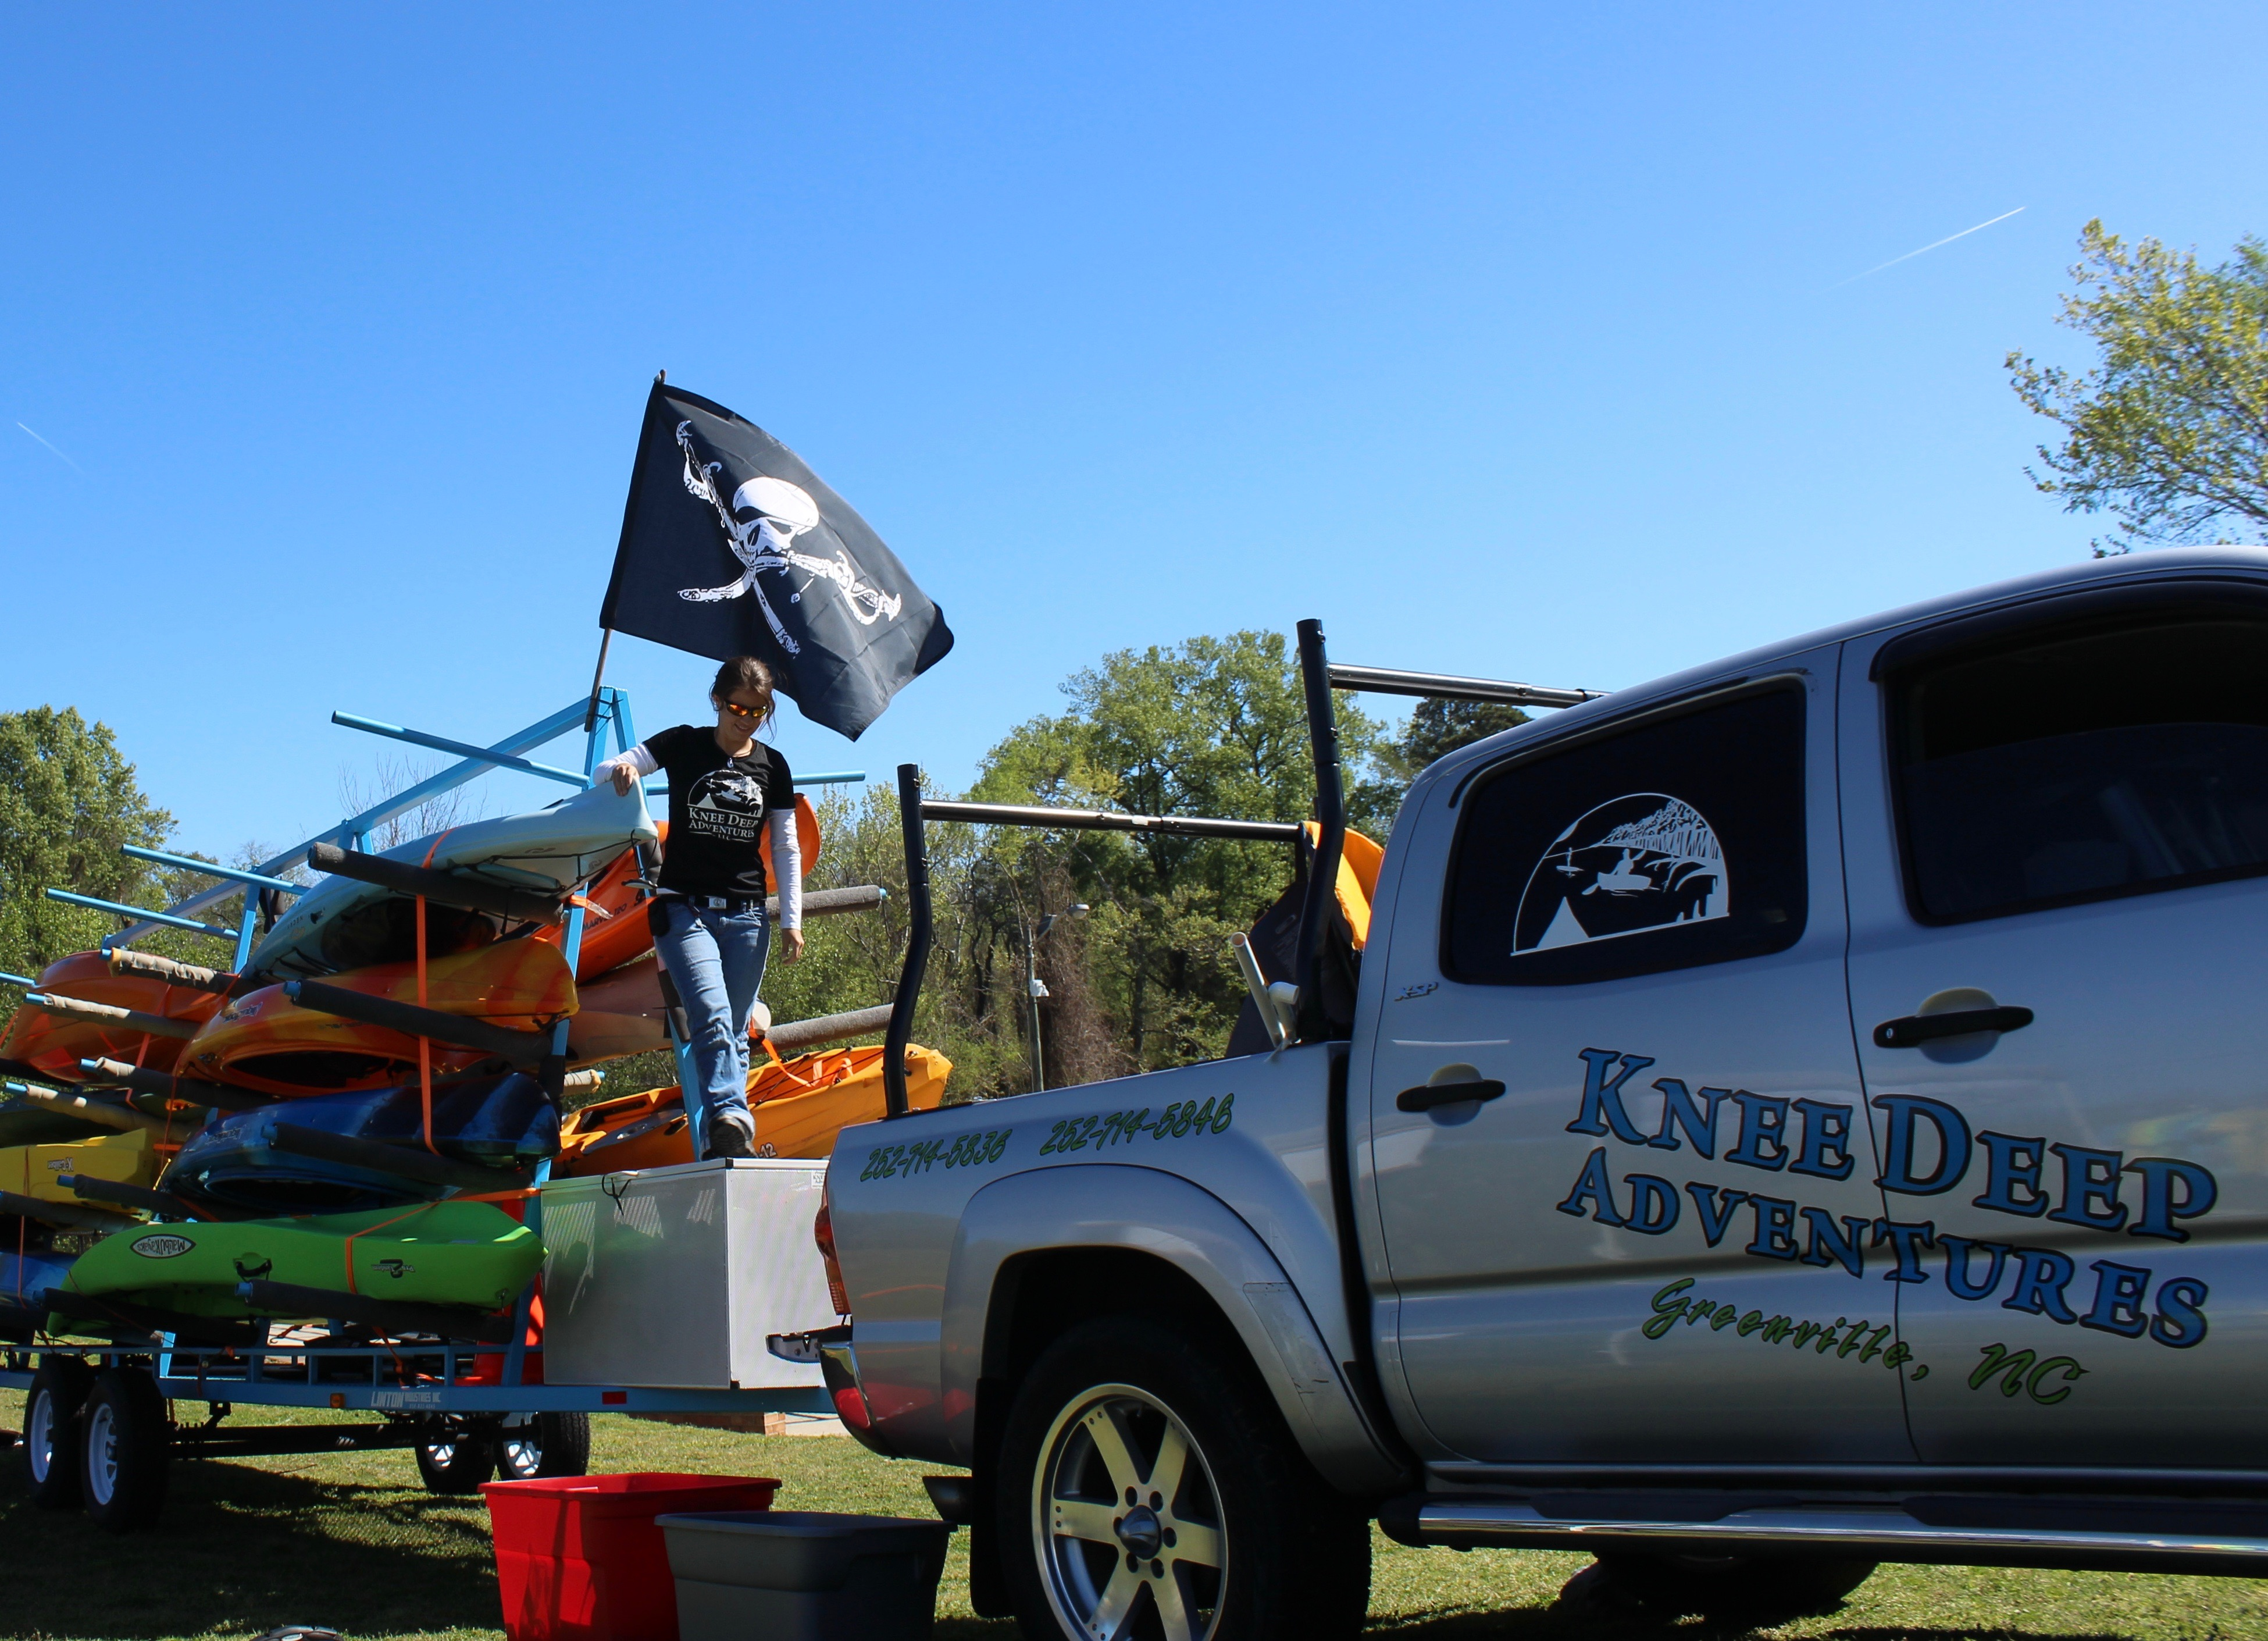 image shows Kelsey Curtis of Knee Deep Adventures in Greenville NC with kayaks and company truck